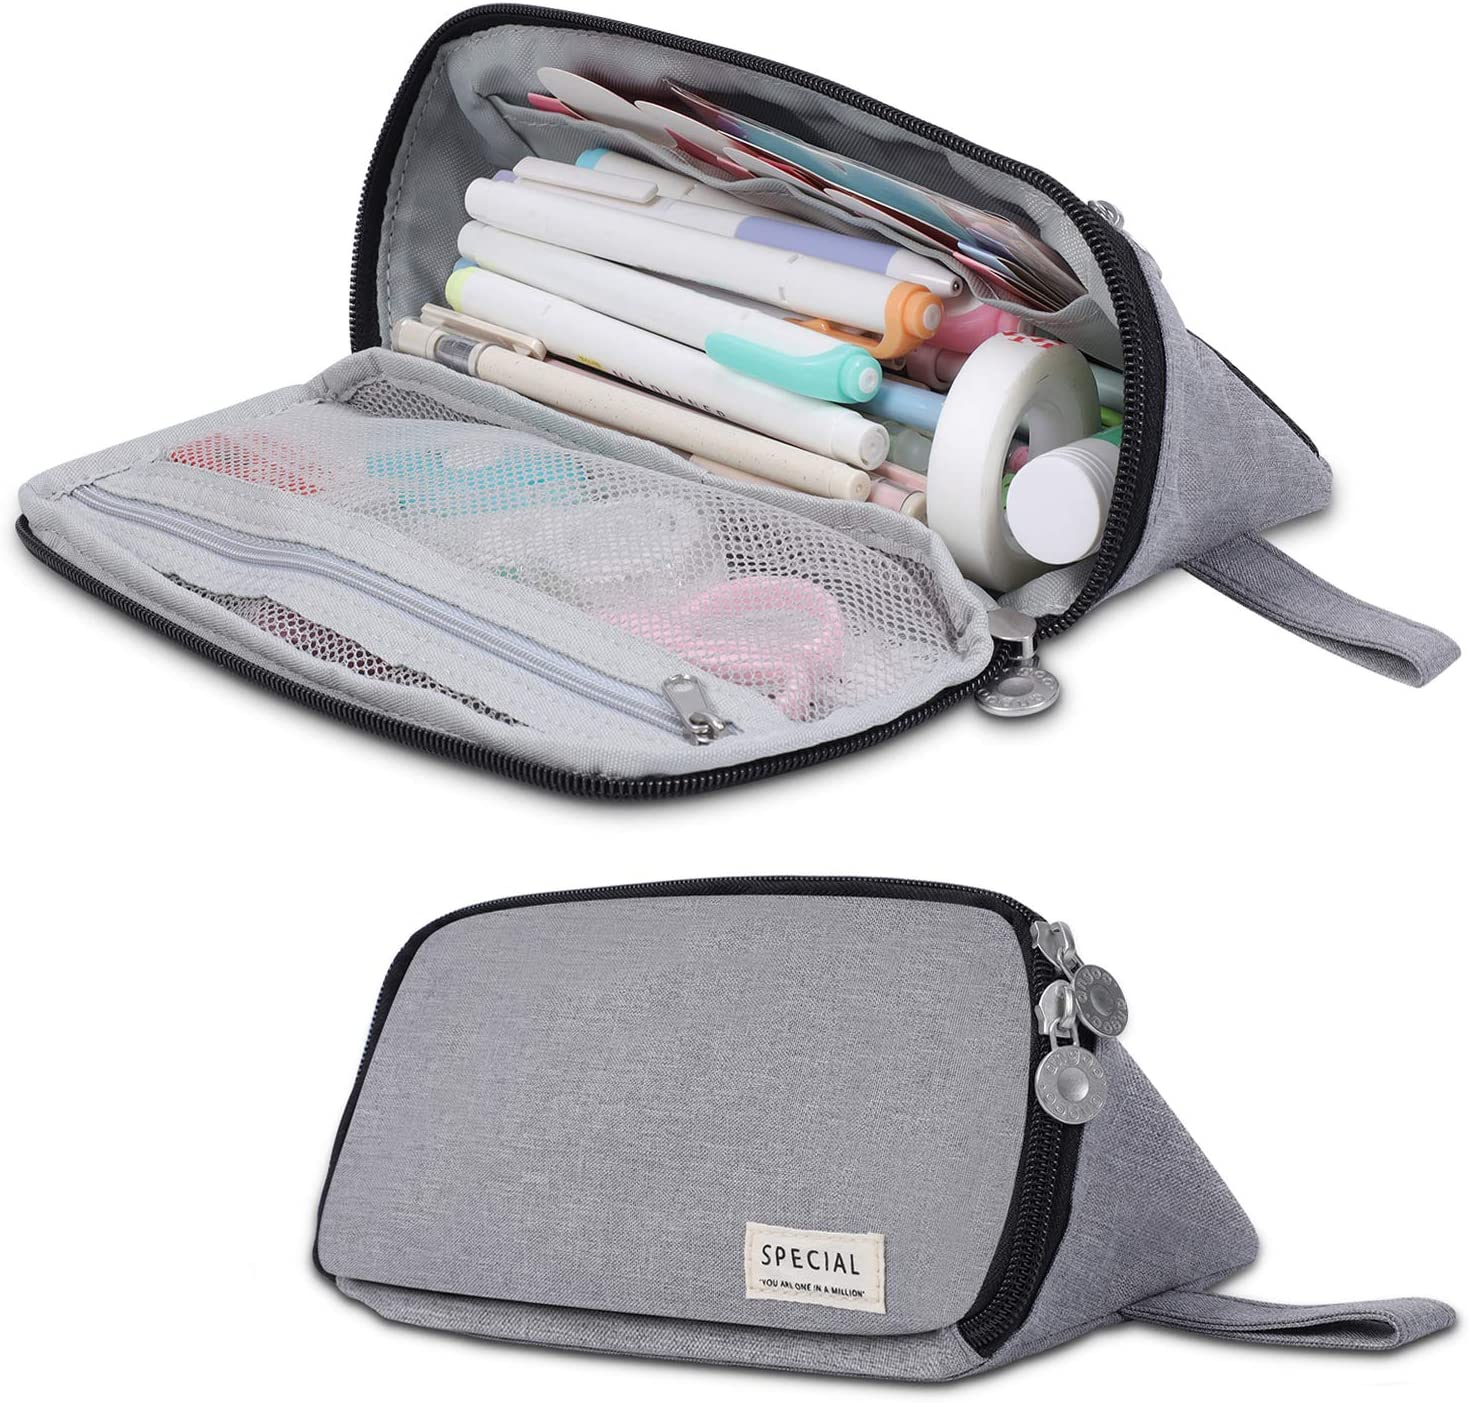 Big Capacity Pencil Case, Triangle Pencil Pouch, Handheld Pencil Bag with Zipper, Makeup Bag, Stationery Organizer Pen Holder, for Boys Teens Adults Students School Office Supplies (Light Gray)